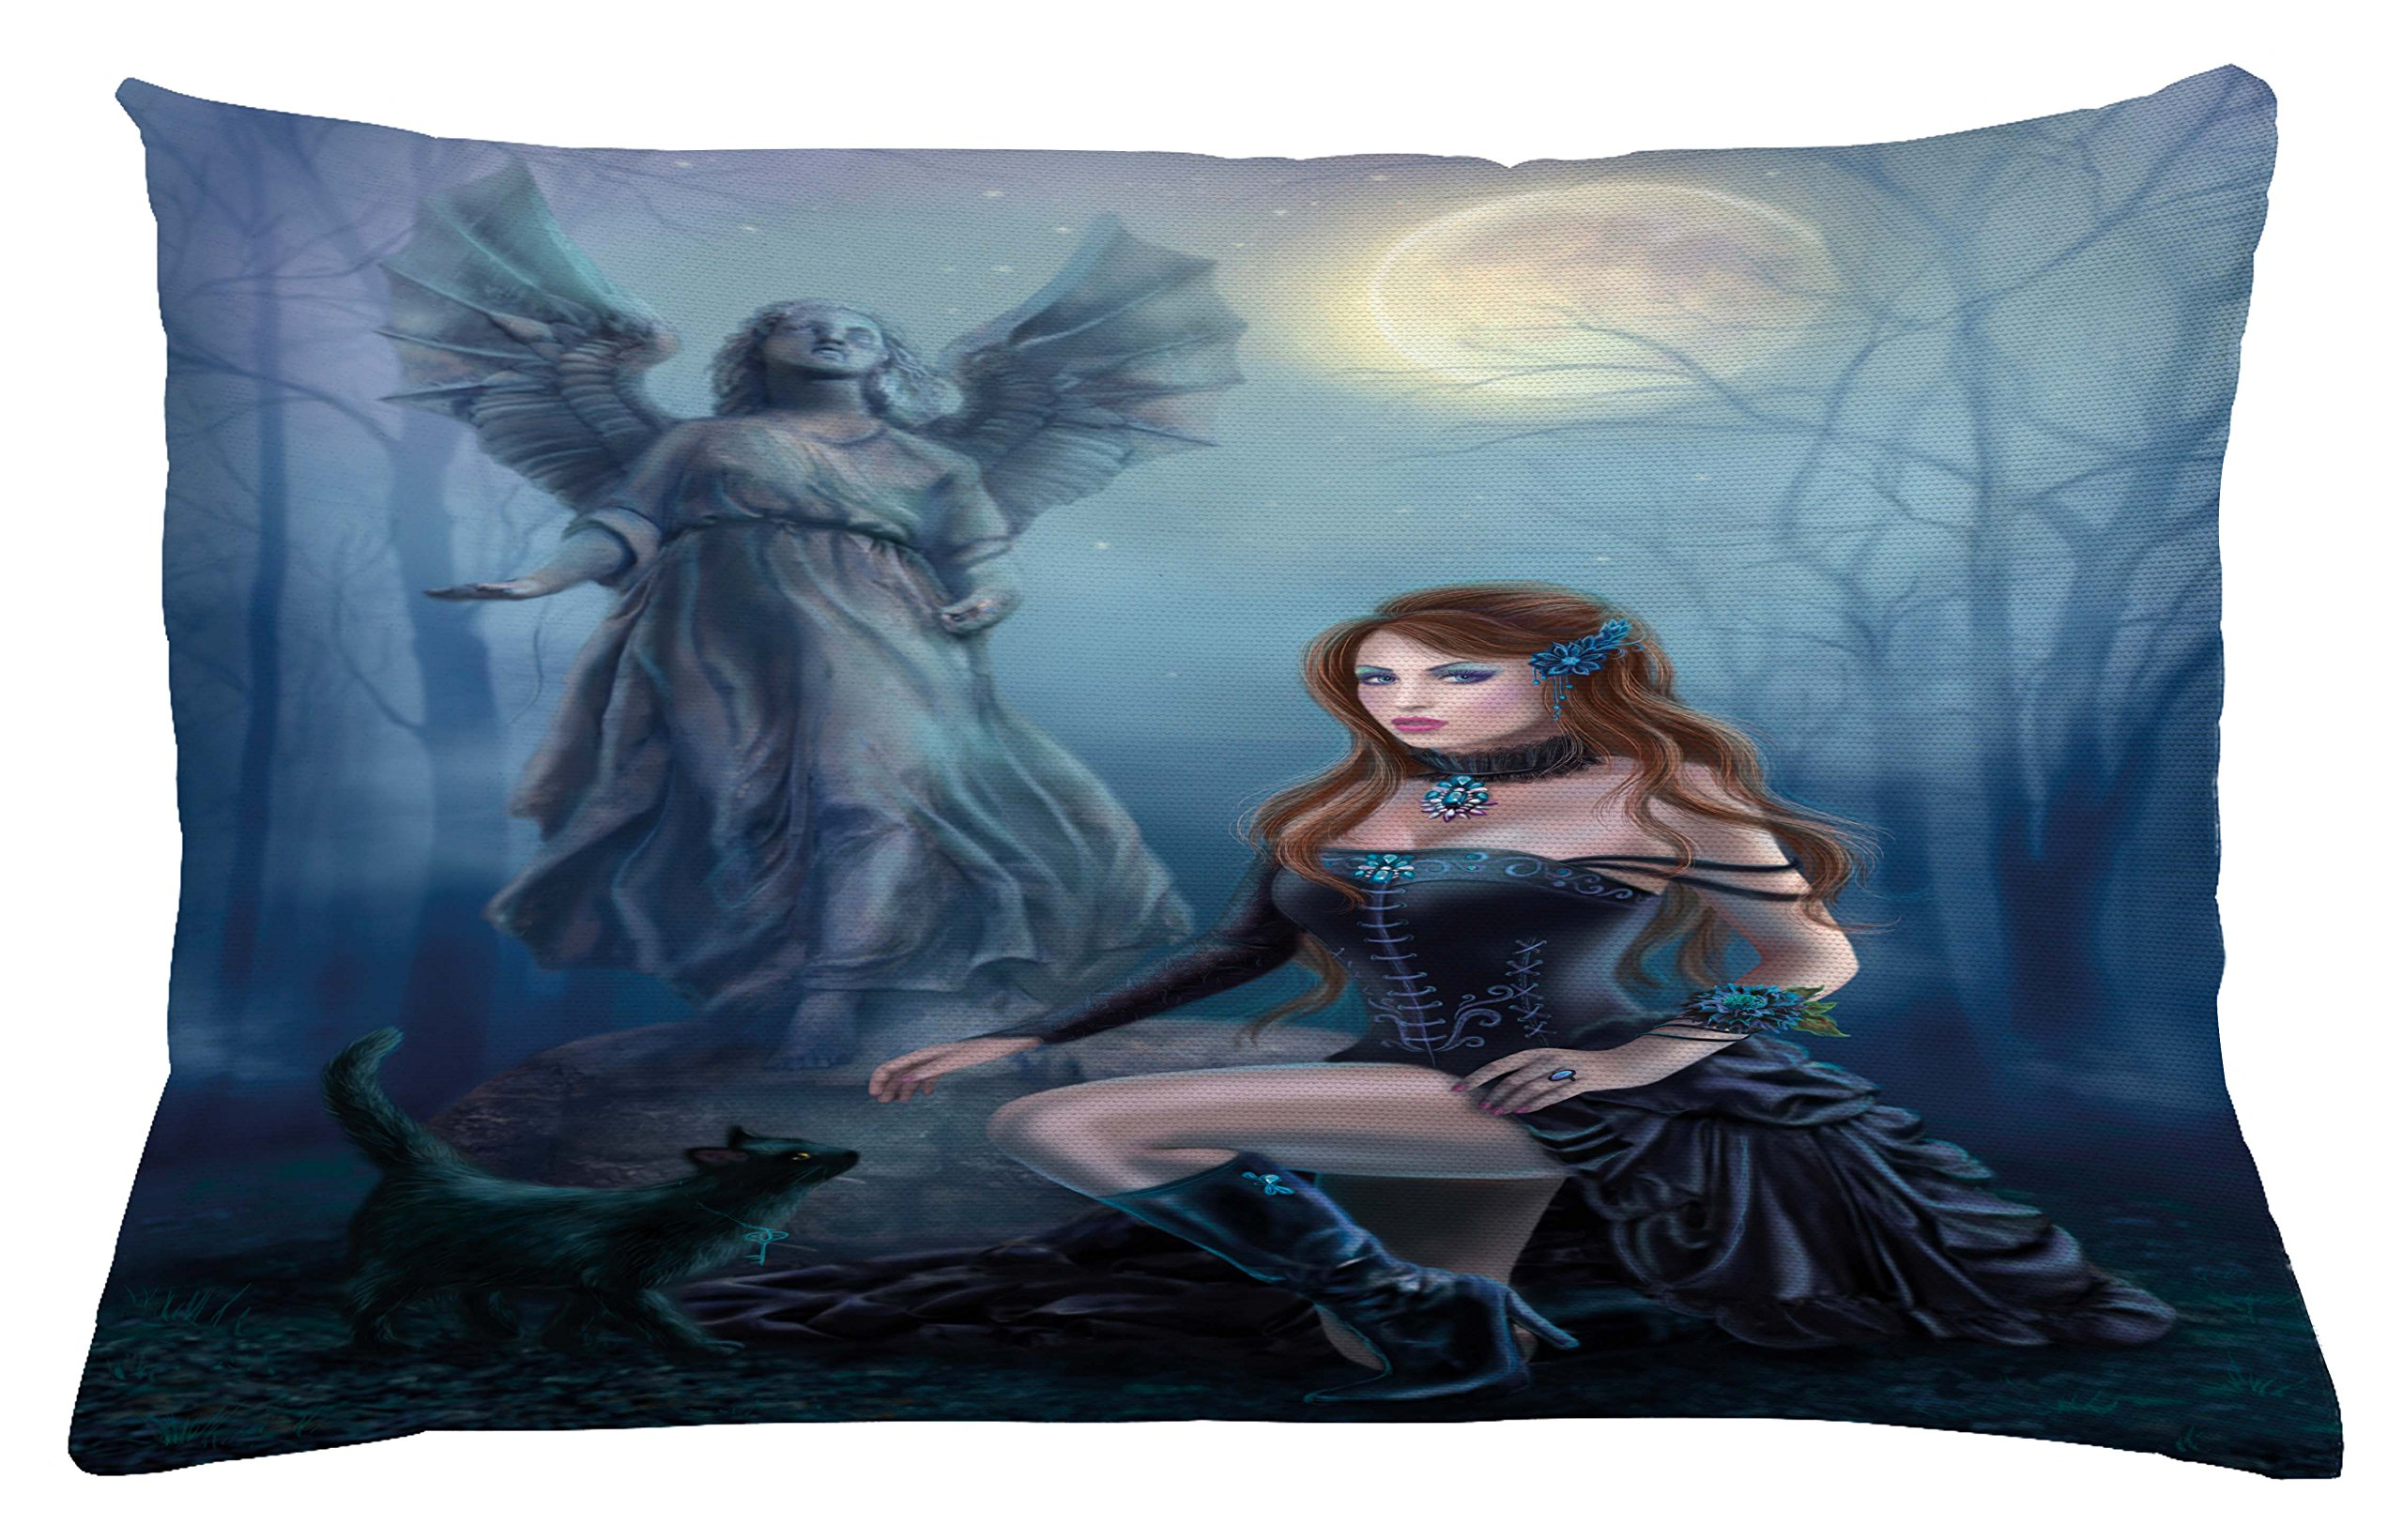 Lunarable Vampire Throw Pillow Cushion Cover, Fantasy Woman with Black Cat About an Angel Statue Mysterious Woods Gothic Print, Decorative Accent Pillow Case, 26 W X 16 L inches, Multicolor